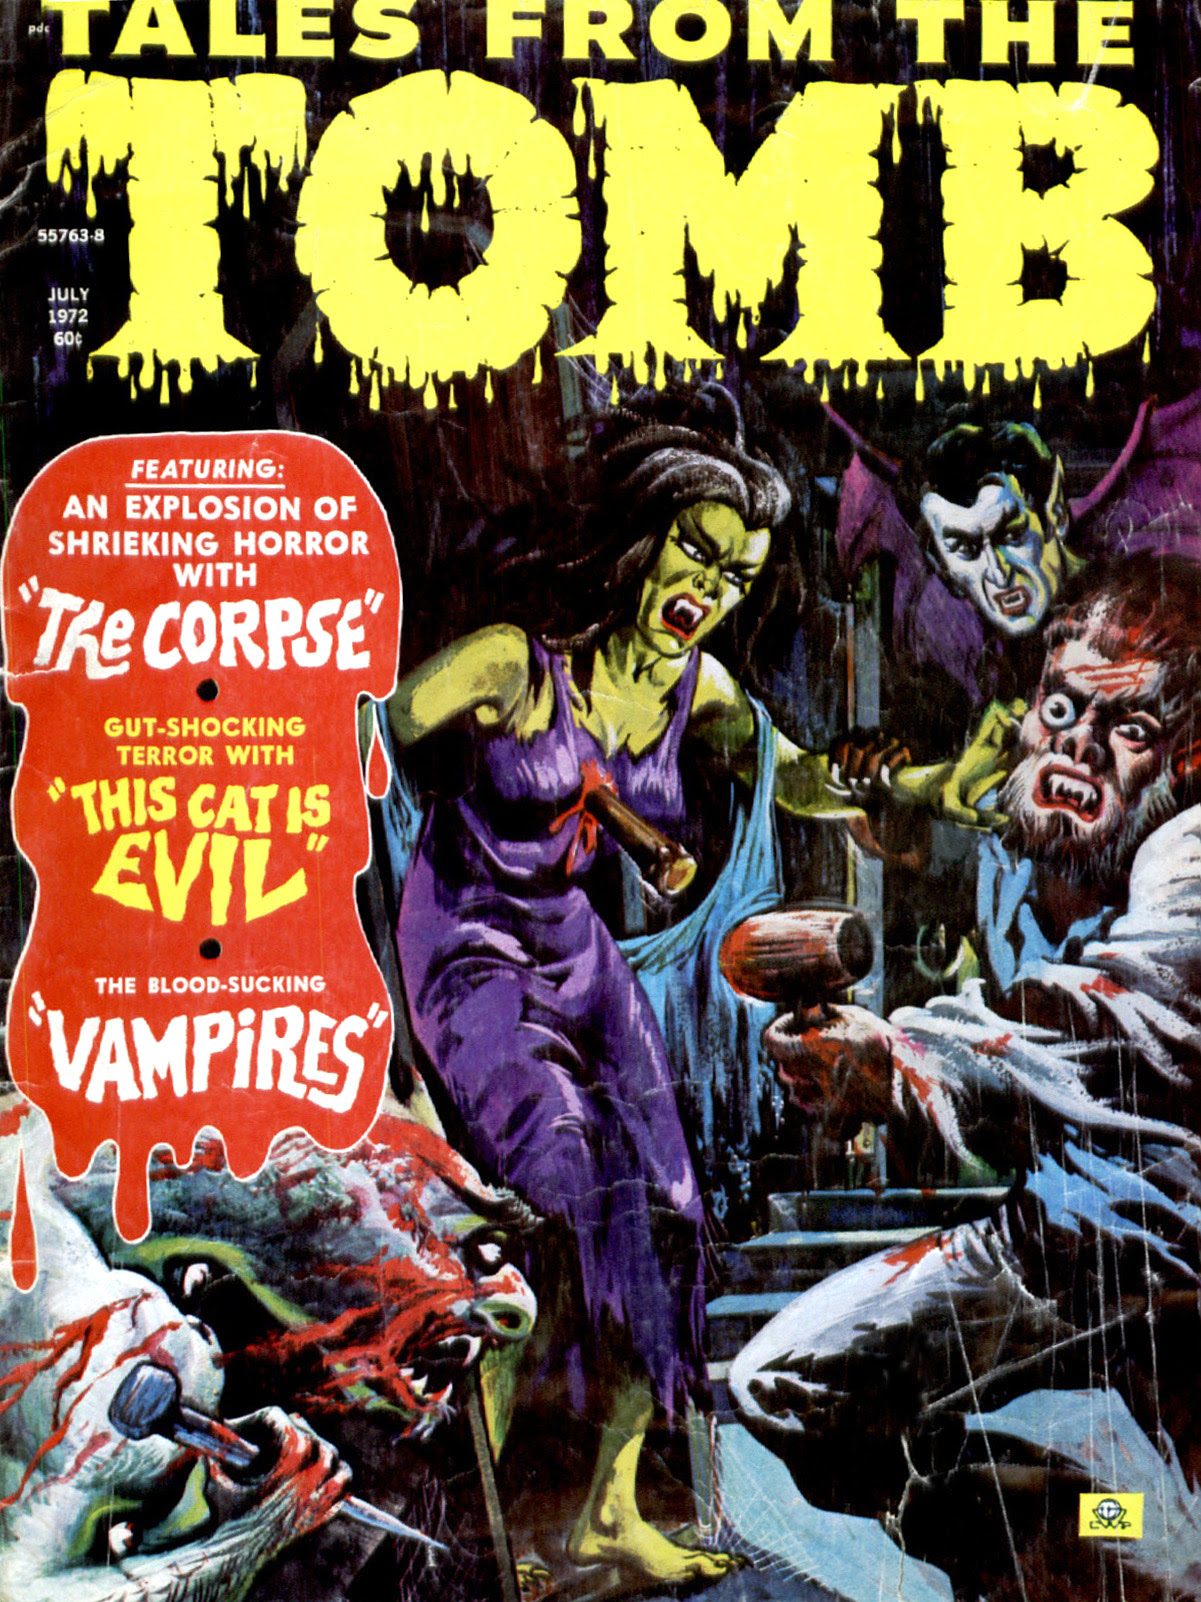 Tales from the Tomb Vol. 4 #3 (Eerie Publications, 1972)